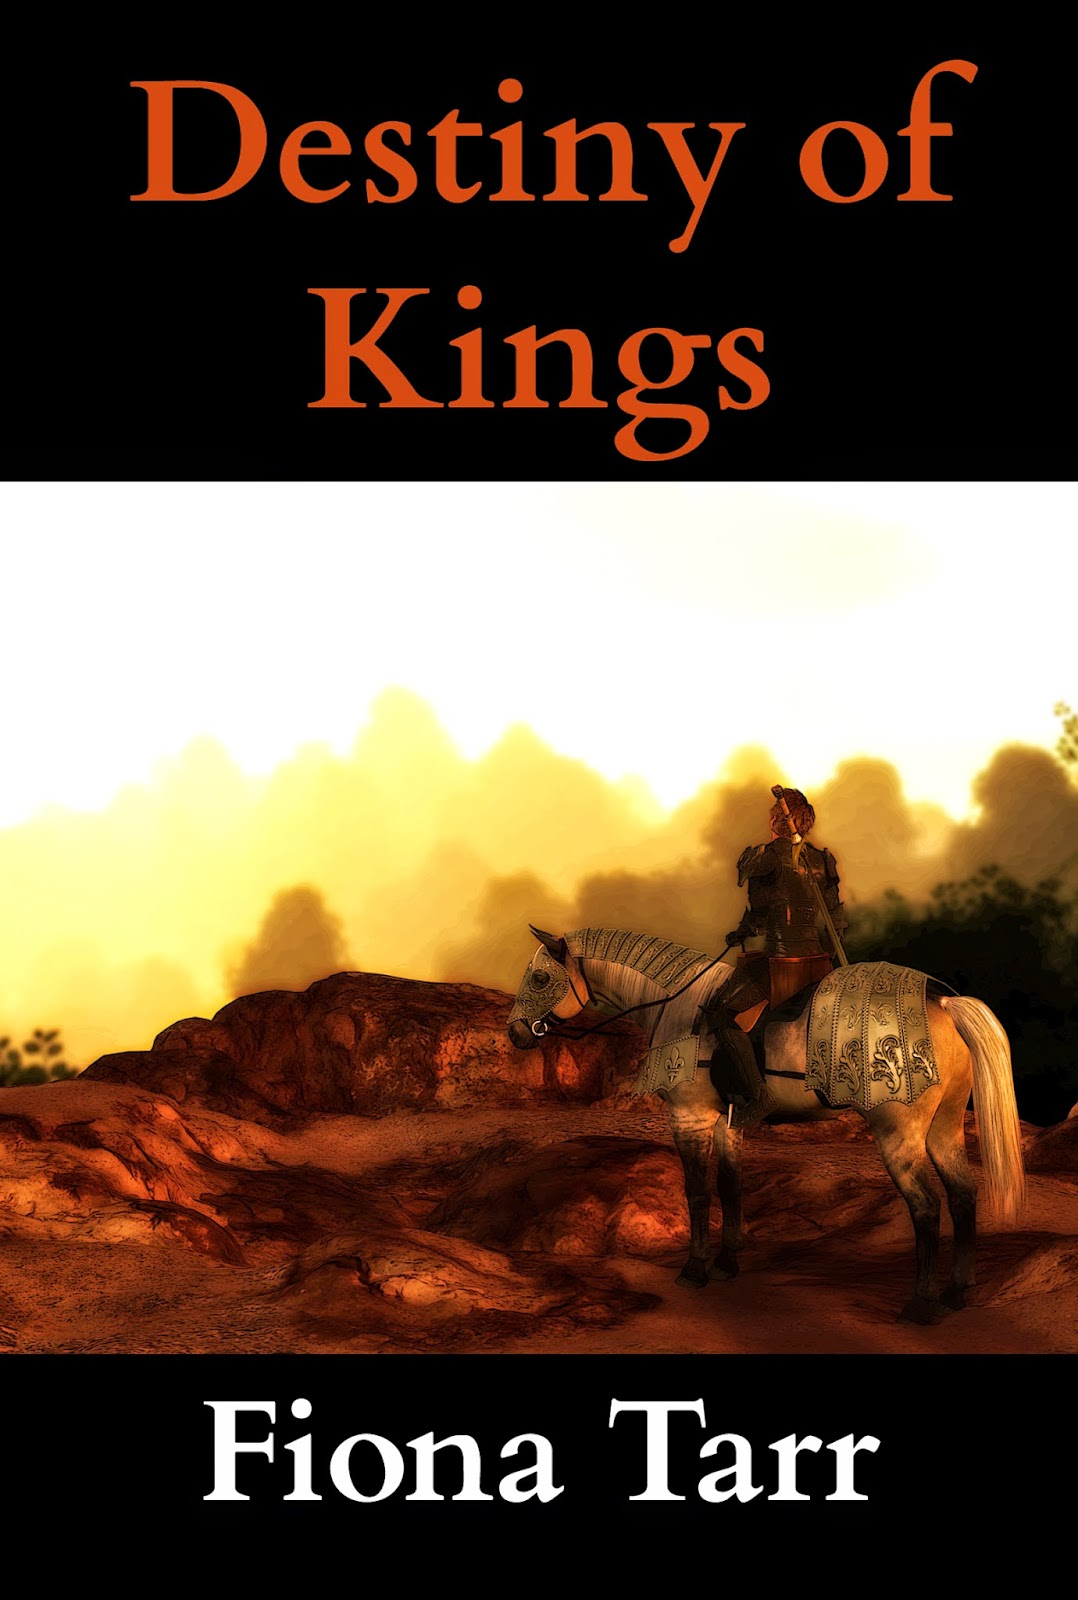 http://www.amazon.com/Destiny-Kings-Covenant-Grace-Book-ebook/dp/B00KNQ6EYC/ref=la_B00KOL7XI2_1_1?s=books&ie=UTF8&qid=1418977880&sr=1-1